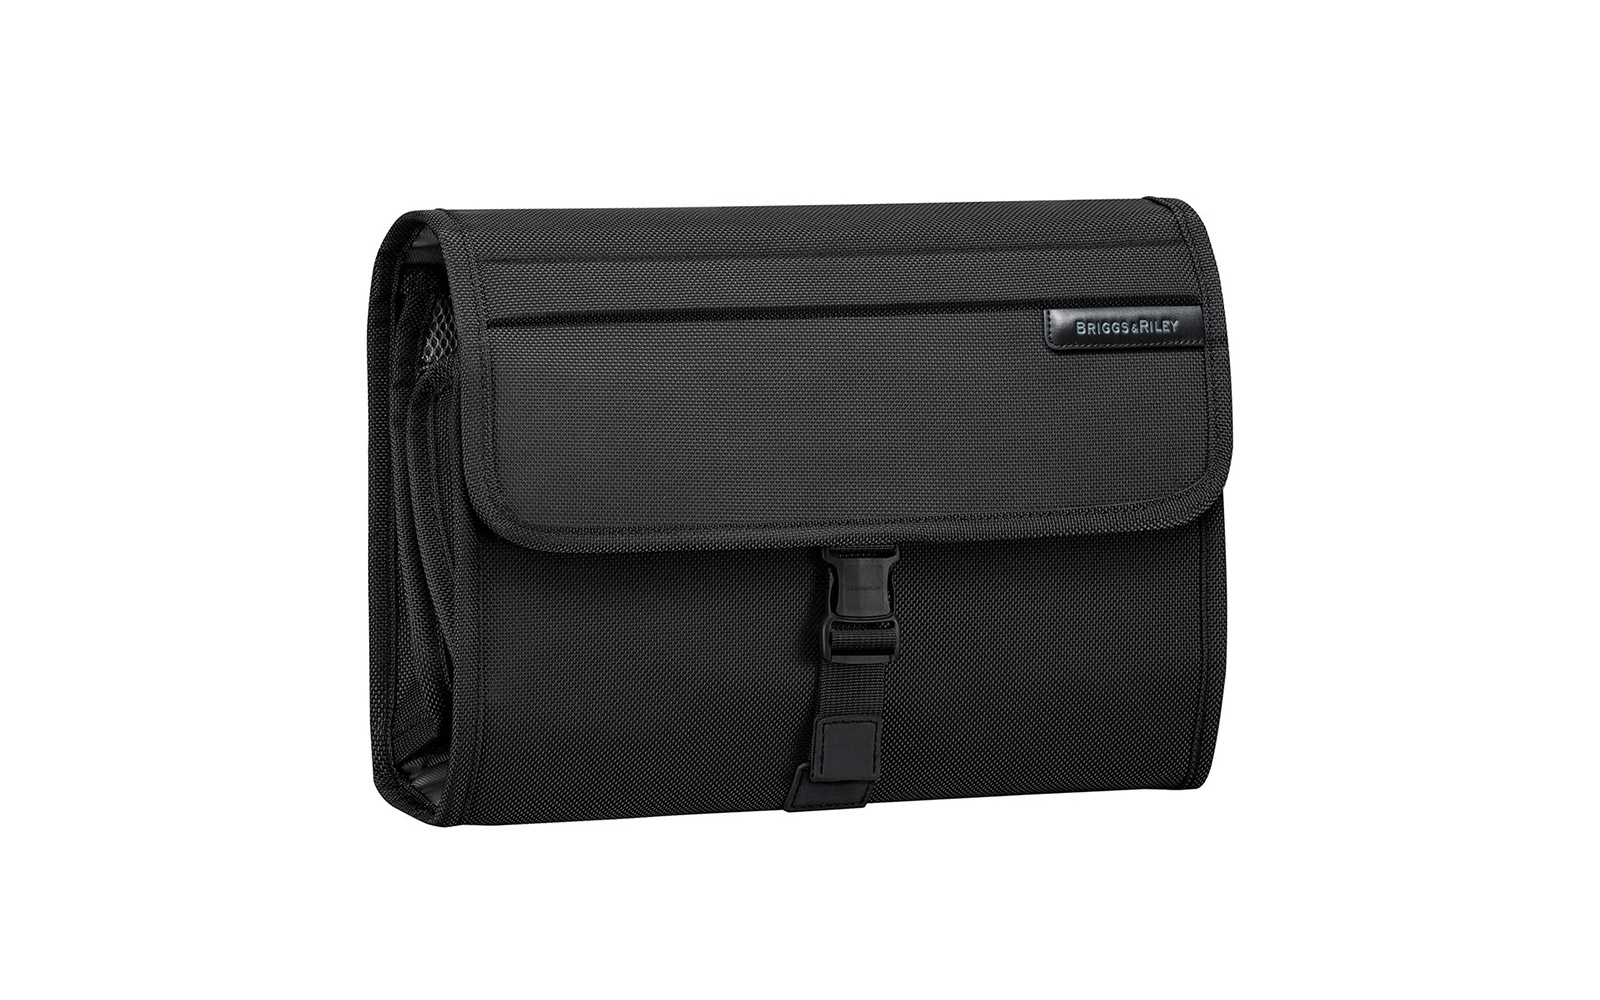 The Best Toiletry Bags cf1902ad4be45